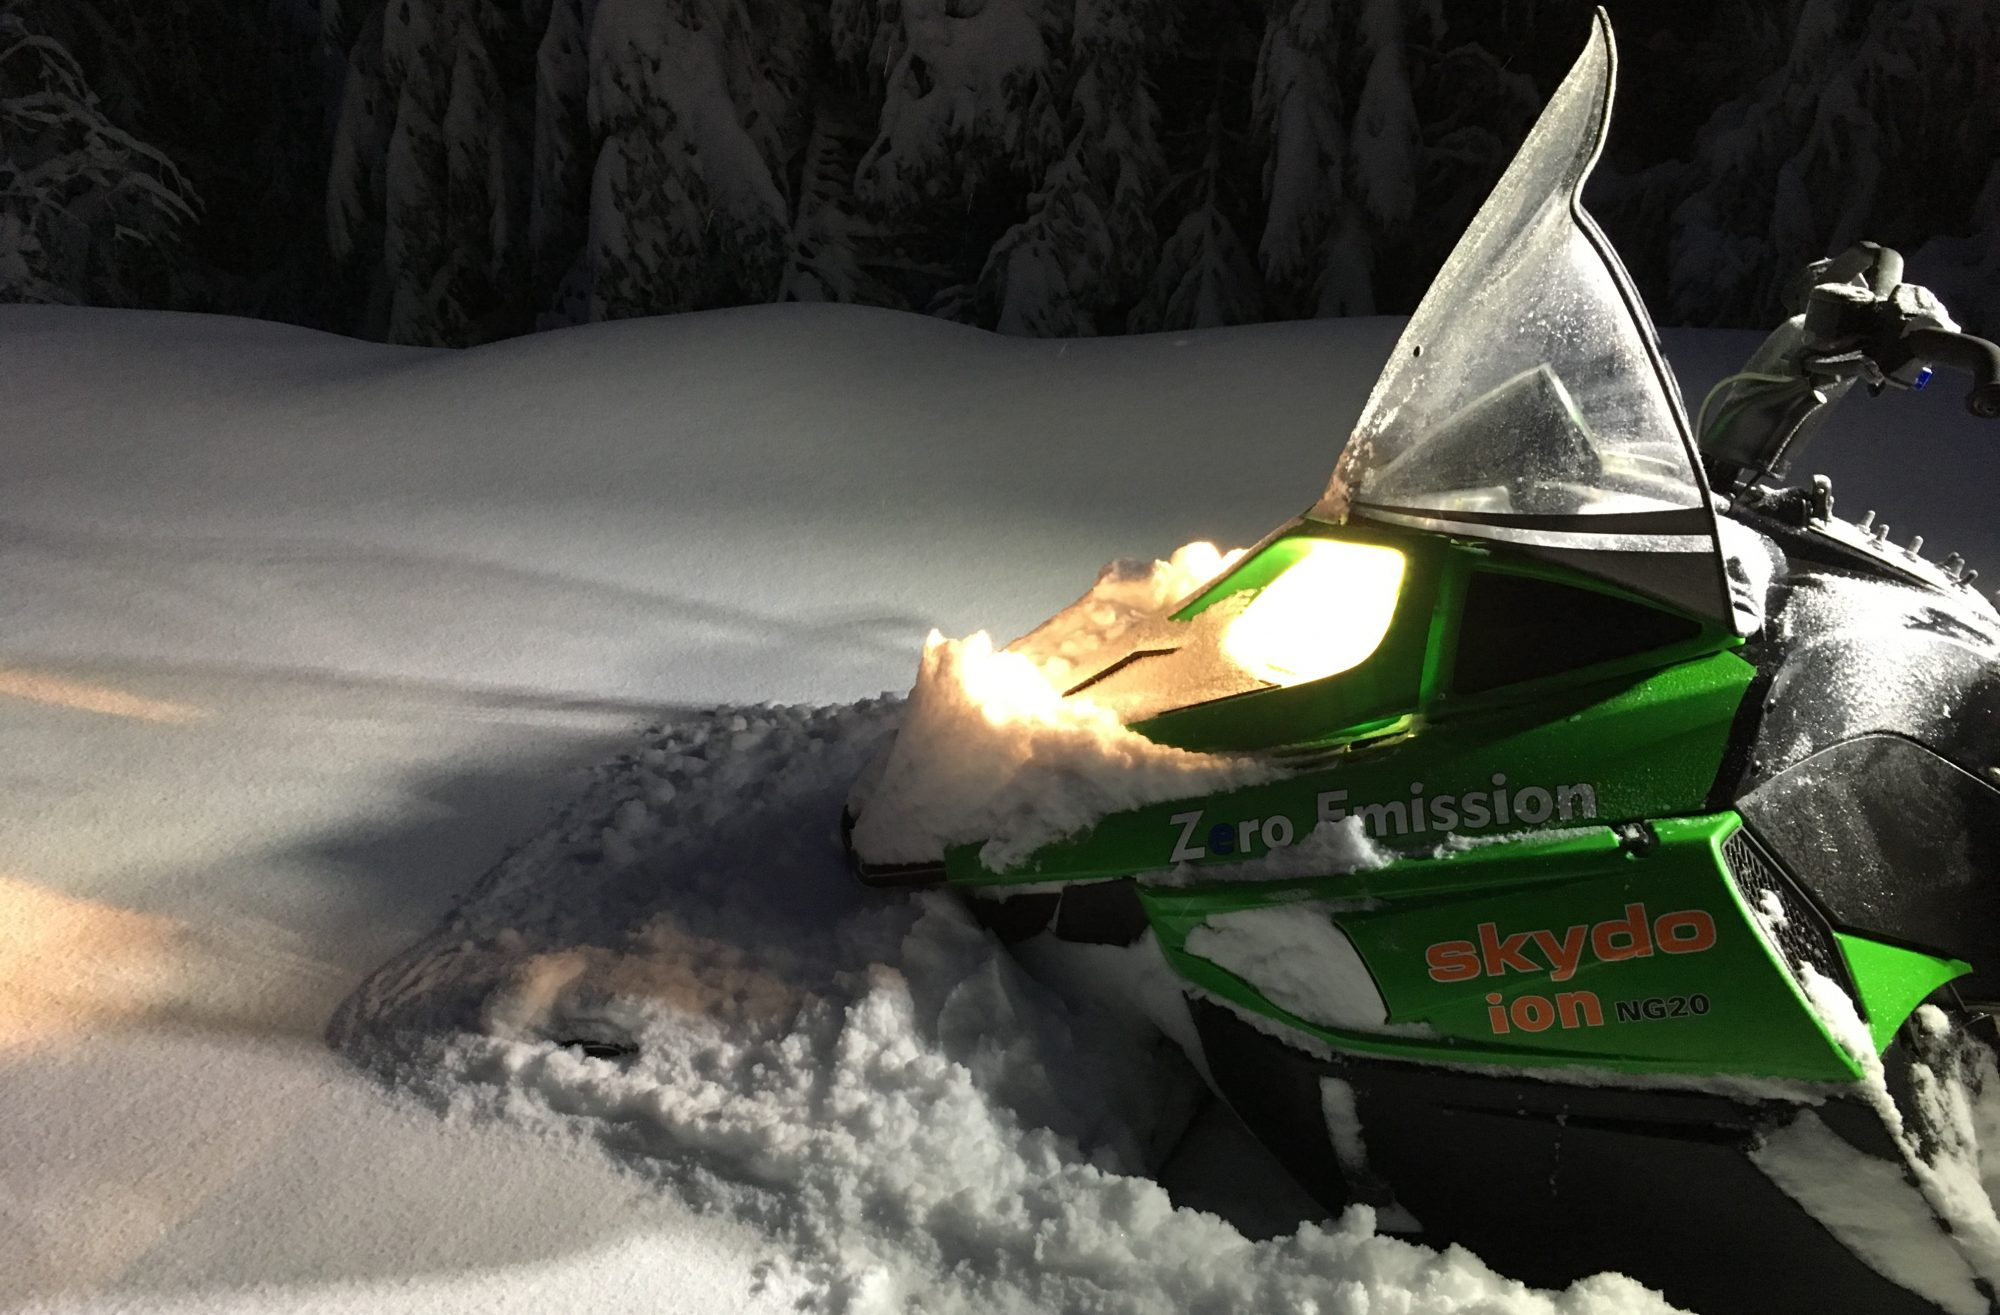 Skydo iON - the next Generation electric Snowmobile